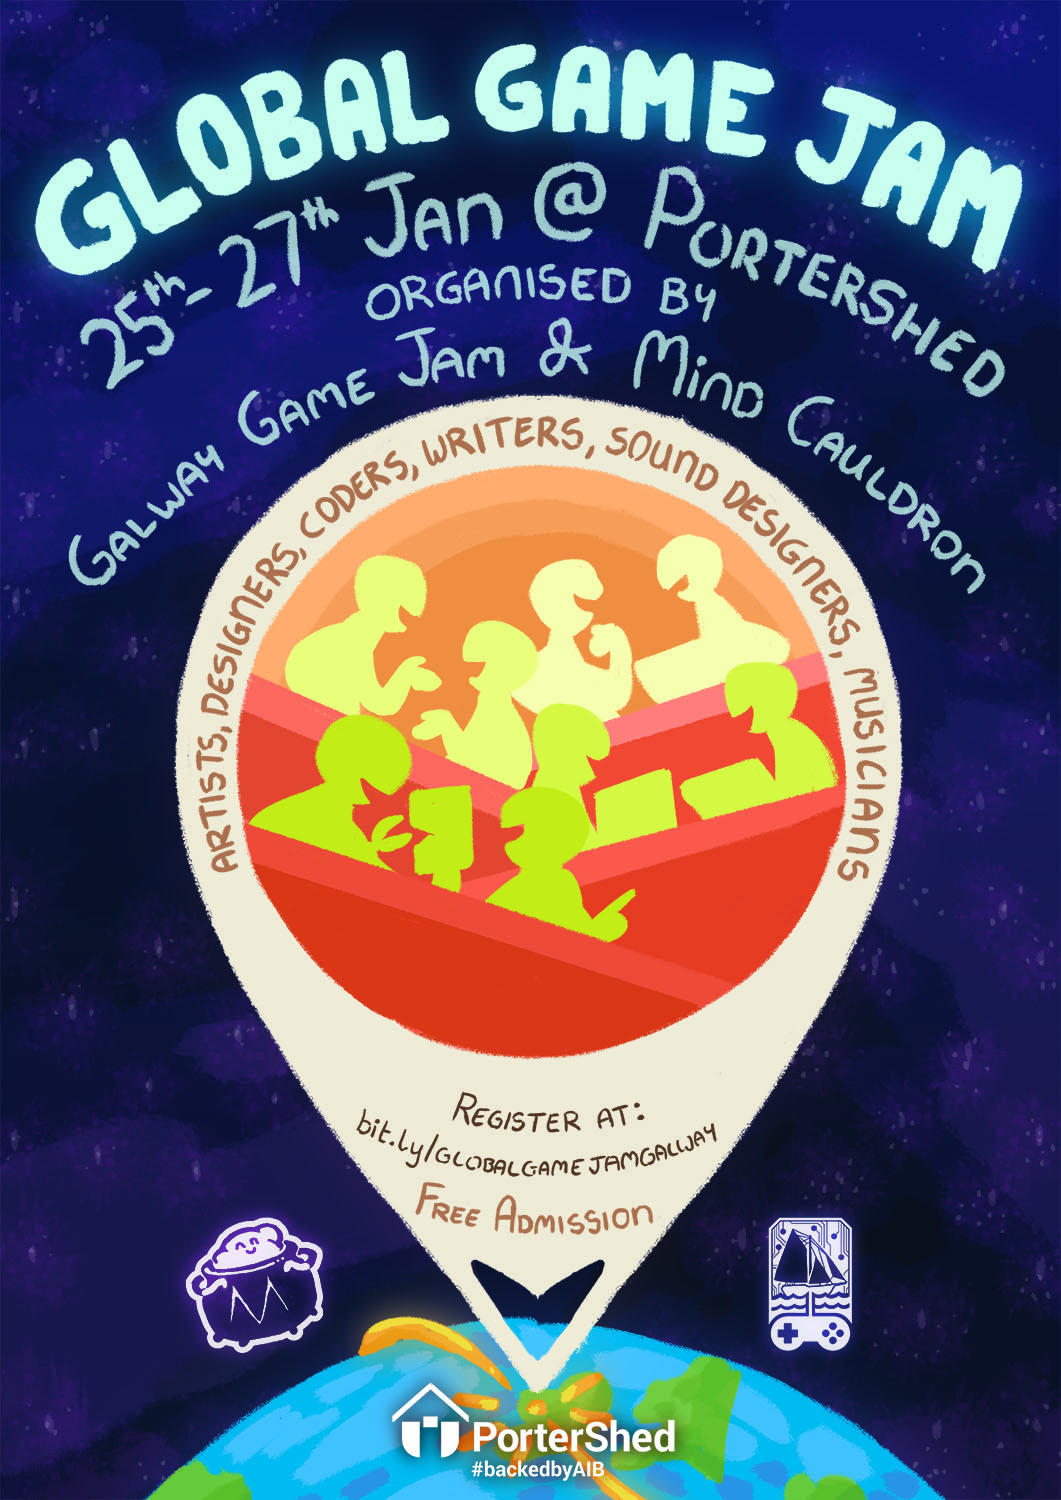 GlobalGameJam'19 at PorterShed, Galway, organised by Galway Game Jam and sponsored by Mind Cauldron, Poster by Kinley Raftery